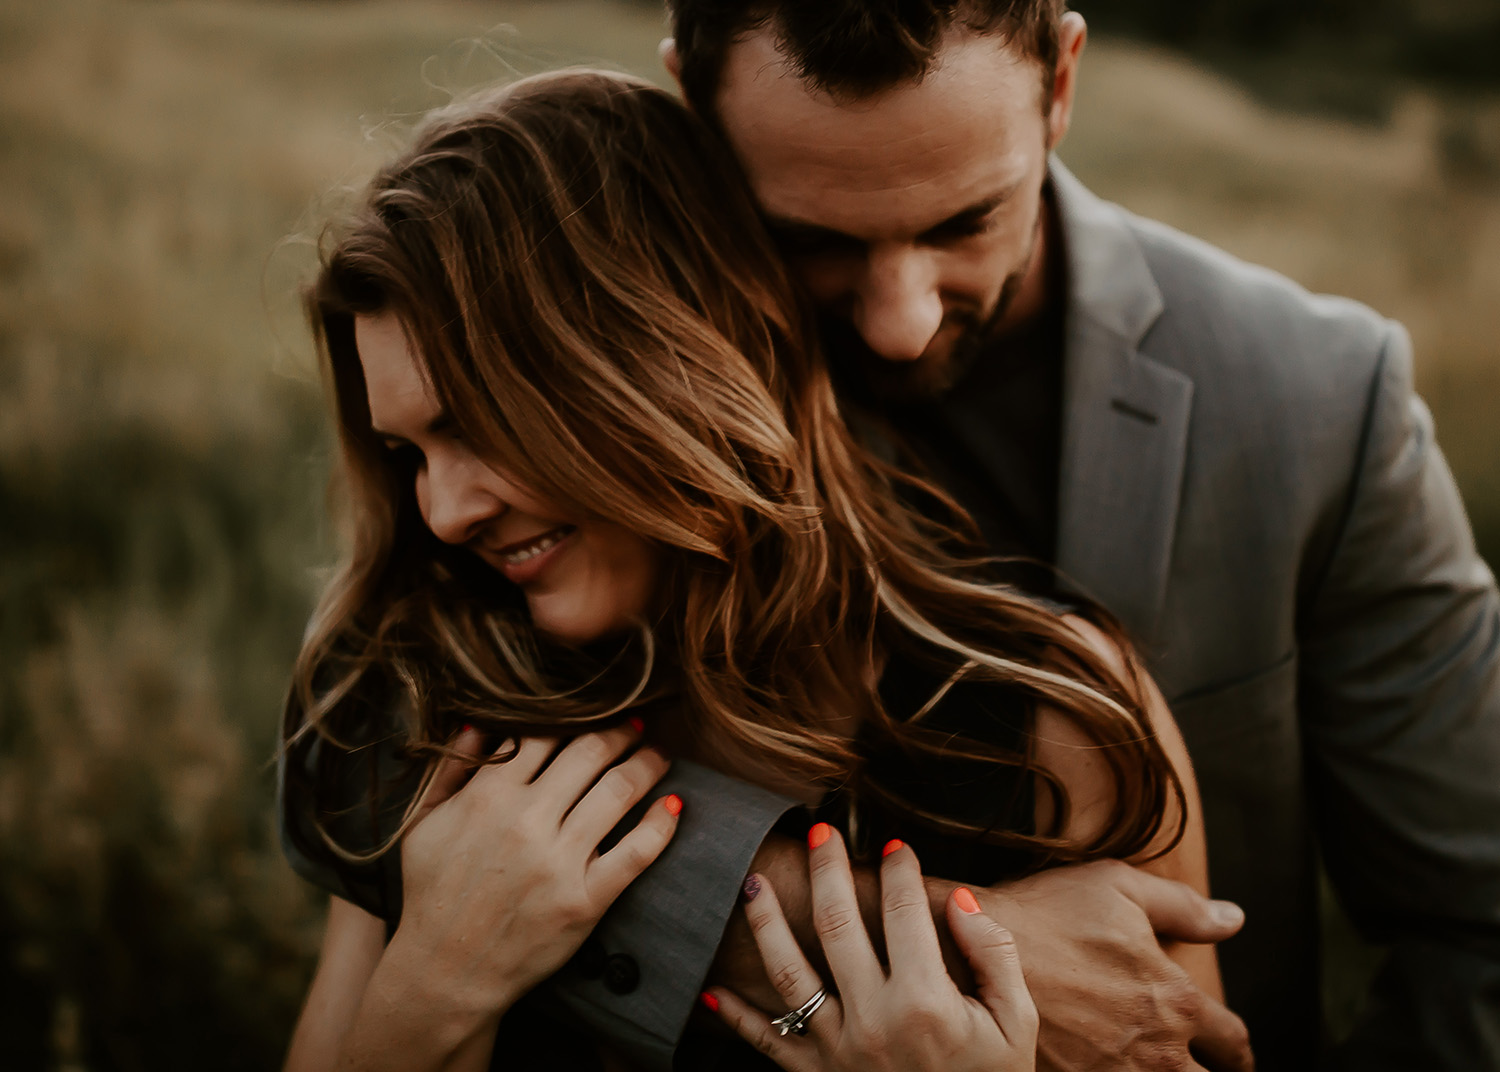 photographer_missouri_adventure_engagement_couples_portrait_8.JPG